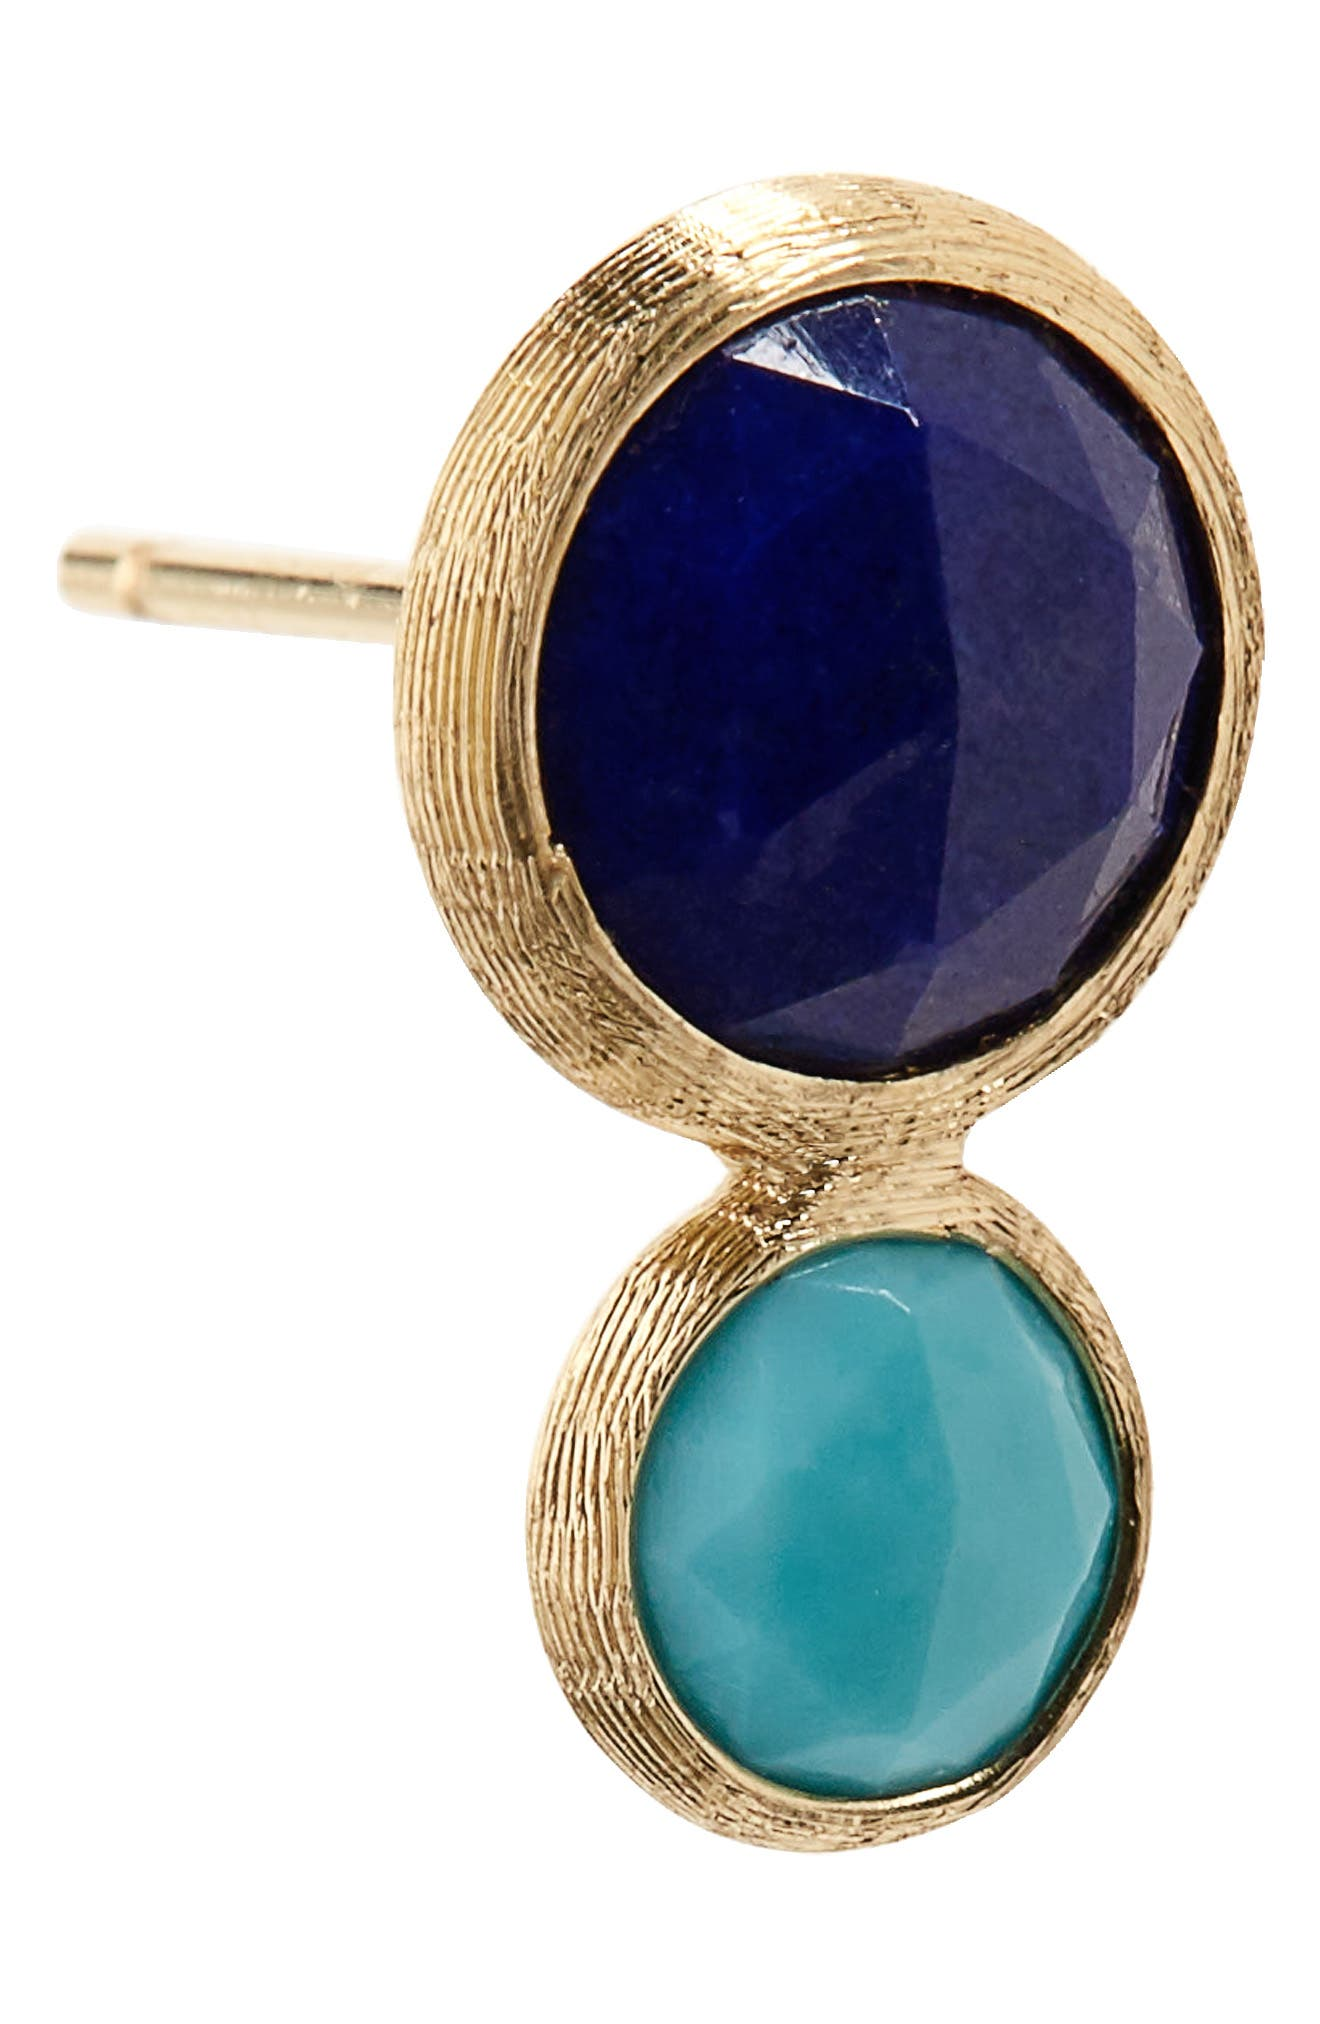 Jaipur Lapis & Turquoise Stud Earrings,                             Alternate thumbnail 5, color,                             YELLOW GOLD LAPIS/ TURQUOISE